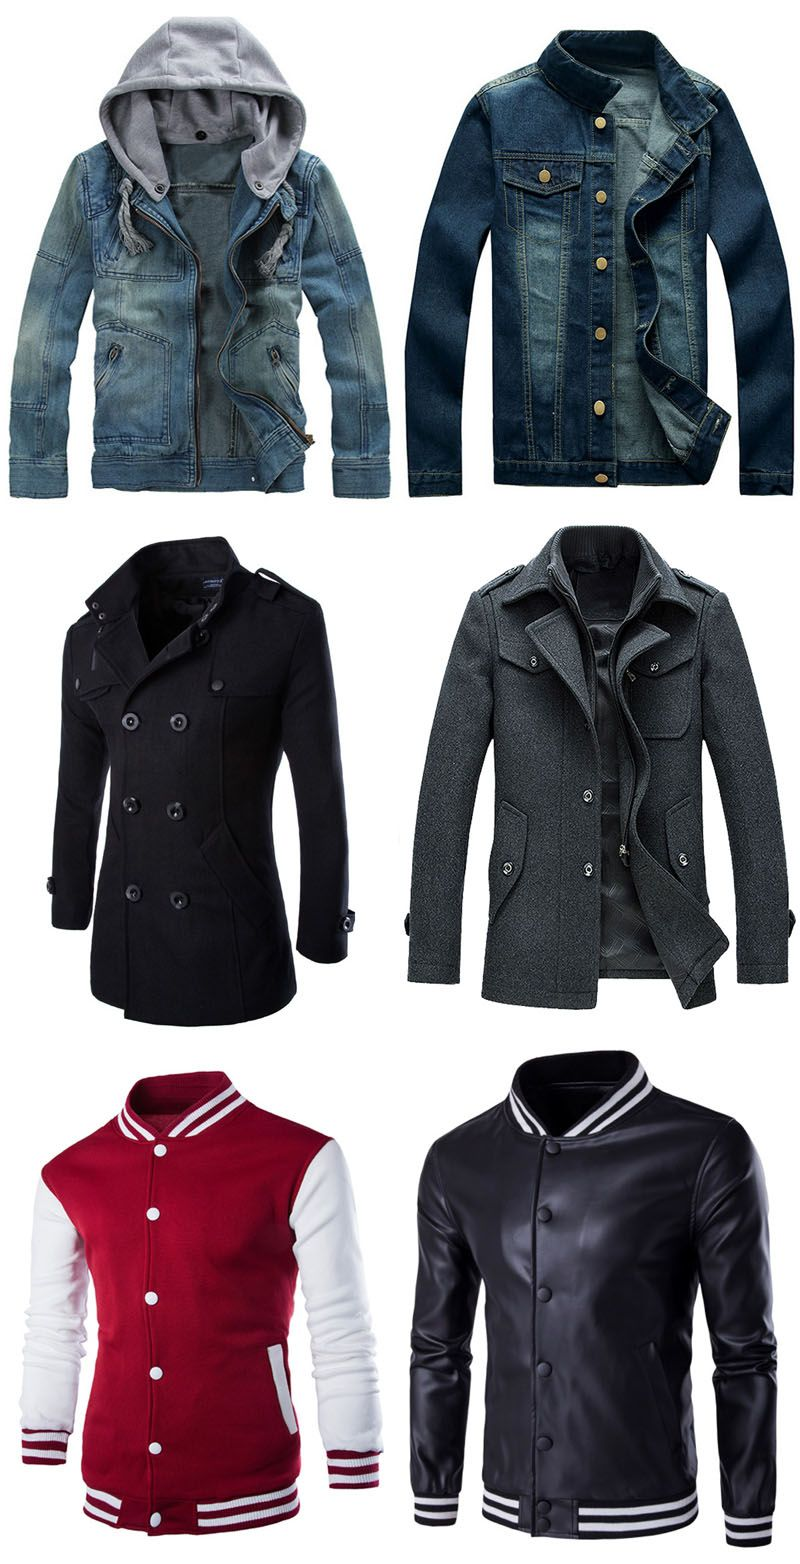 Up to 80% off,Rosewholesale men's jackets and coats |  Rosewholesale,rosewholesale.com,rosewholesale clothes,rosewholesale.com  clothing,rosewholesale for men ...